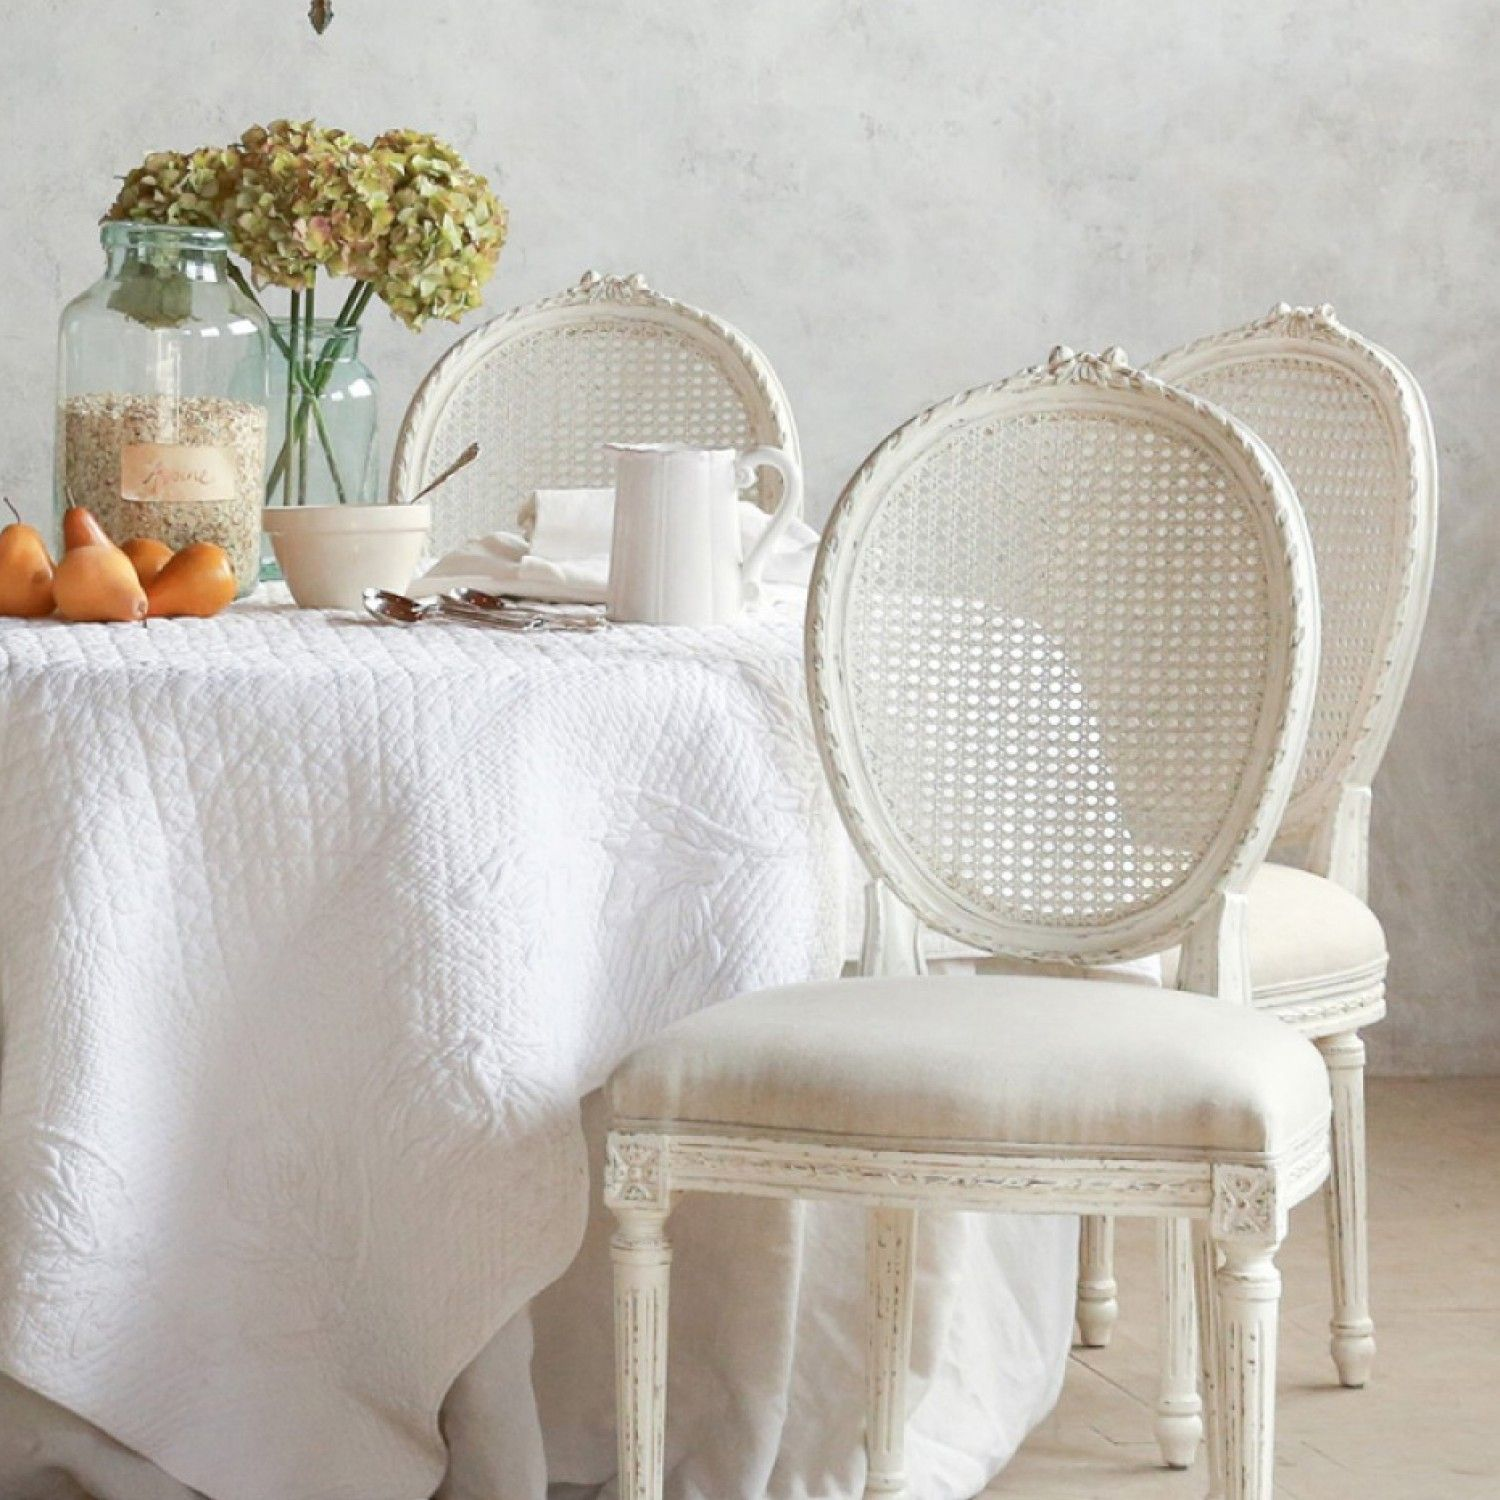 Shabby chic dining chairs - A Lovely French Inspired Shabby Chic Dining Space With A King Louis Style Antique White